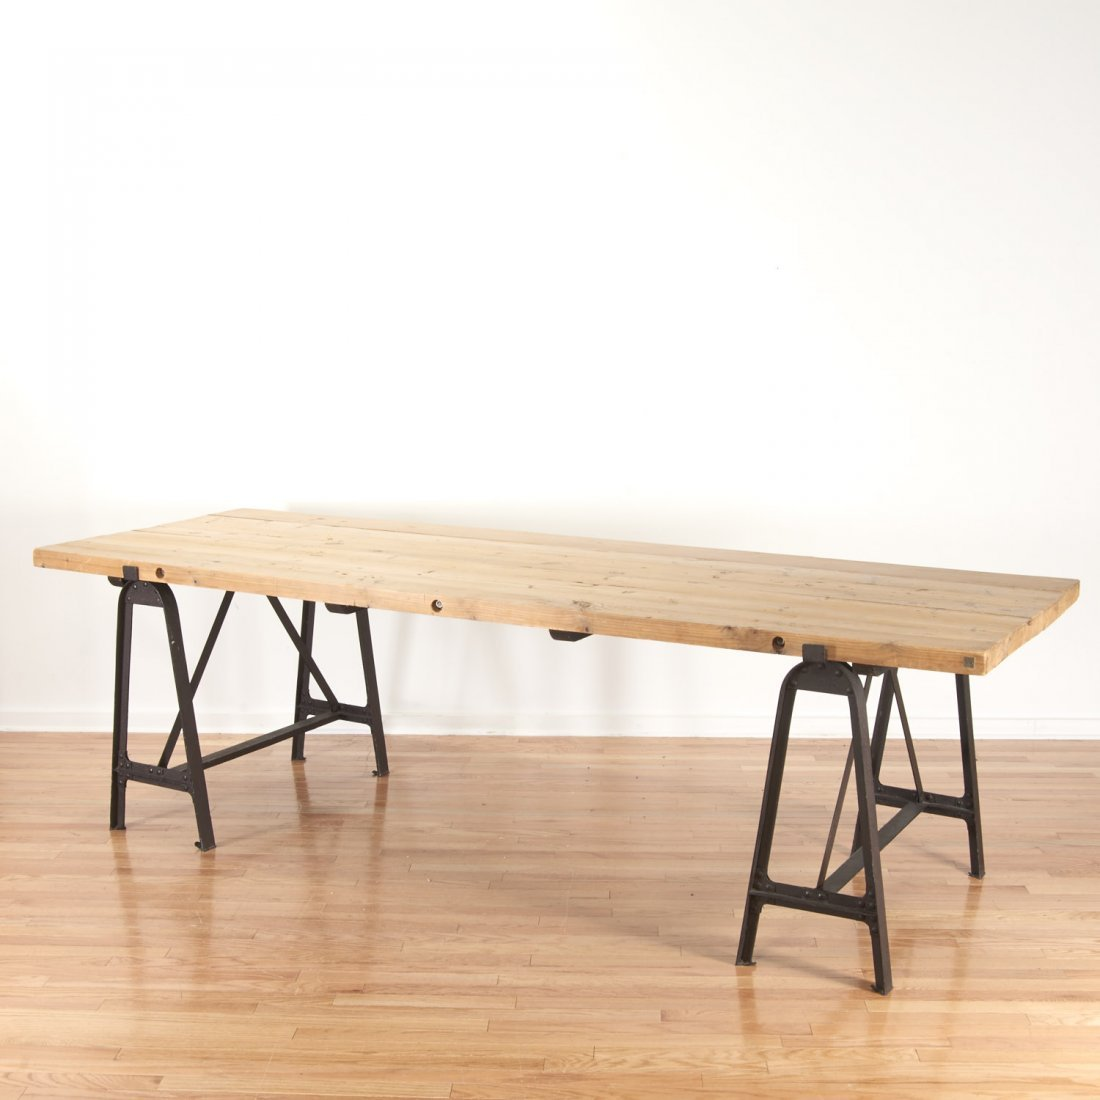 Industrial cast iron, reclaimed wood dining table - 5